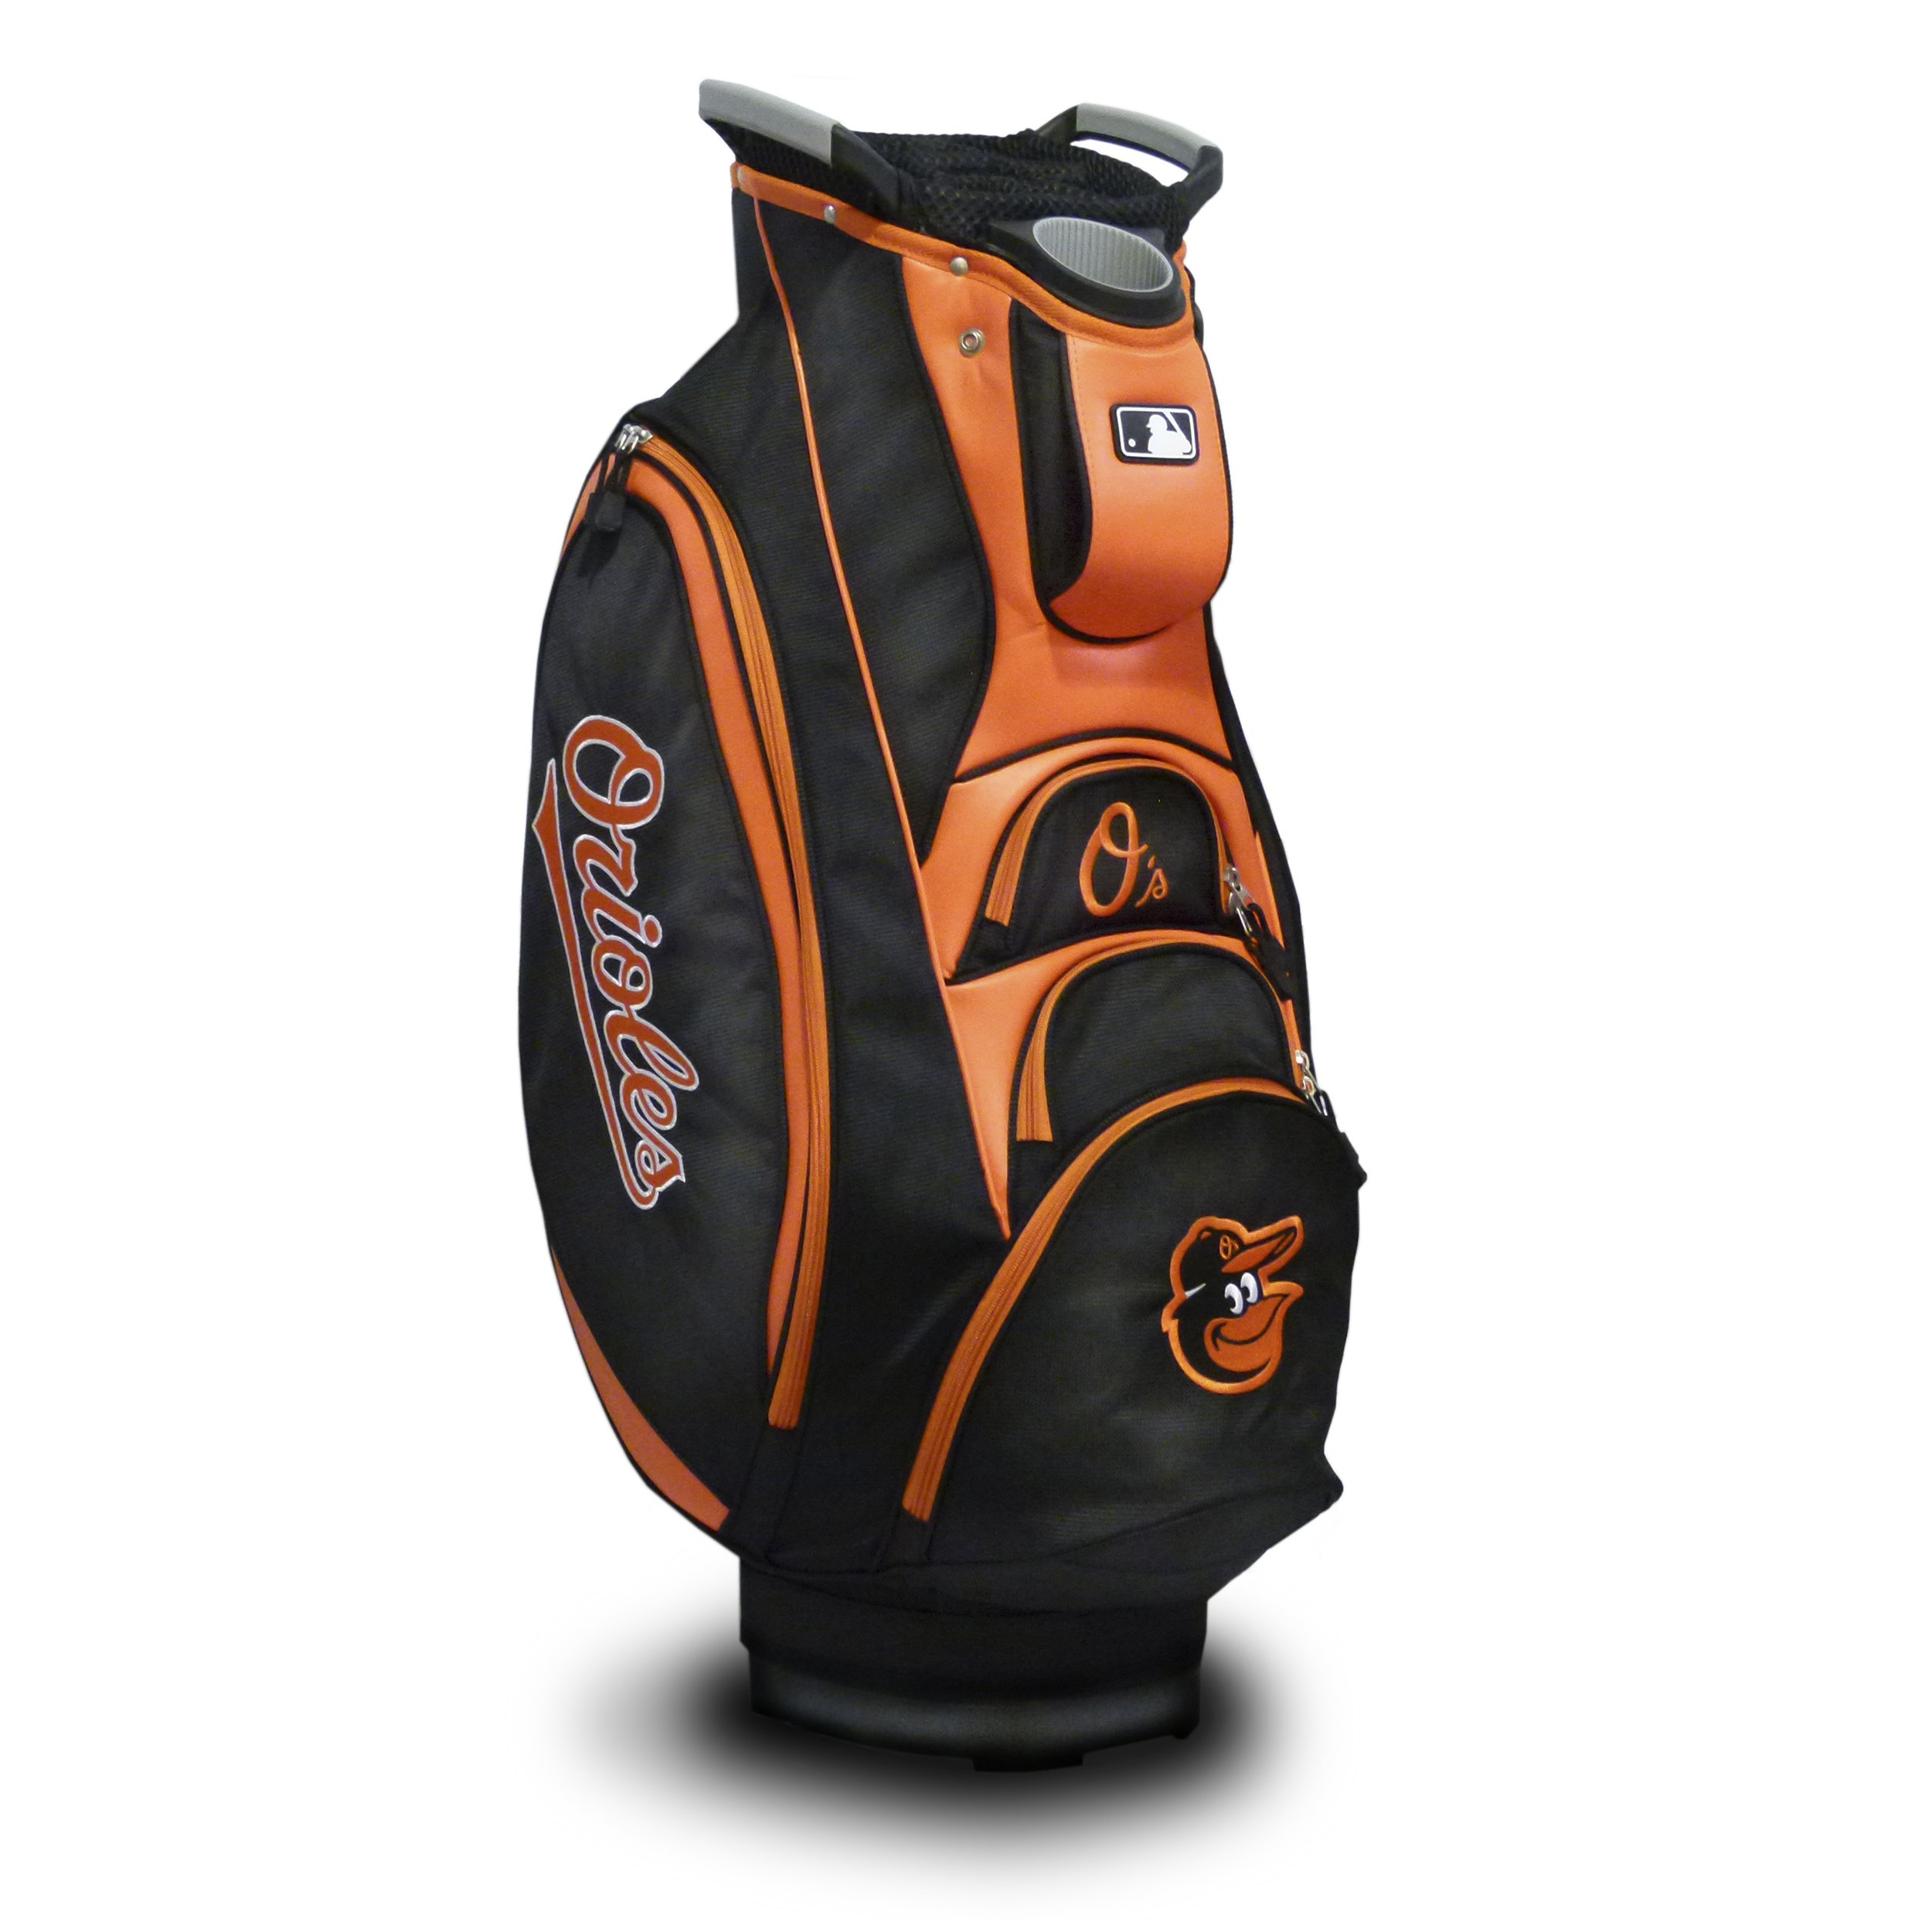 Team Golf MLB Baltimore Orioles Victory Golf Cart Bag, 10-way Top with Integrated Dual Handle & External Putter Well, Cooler Pocket, Padded Strap, Umbrella Holder & Removable Rain Hood